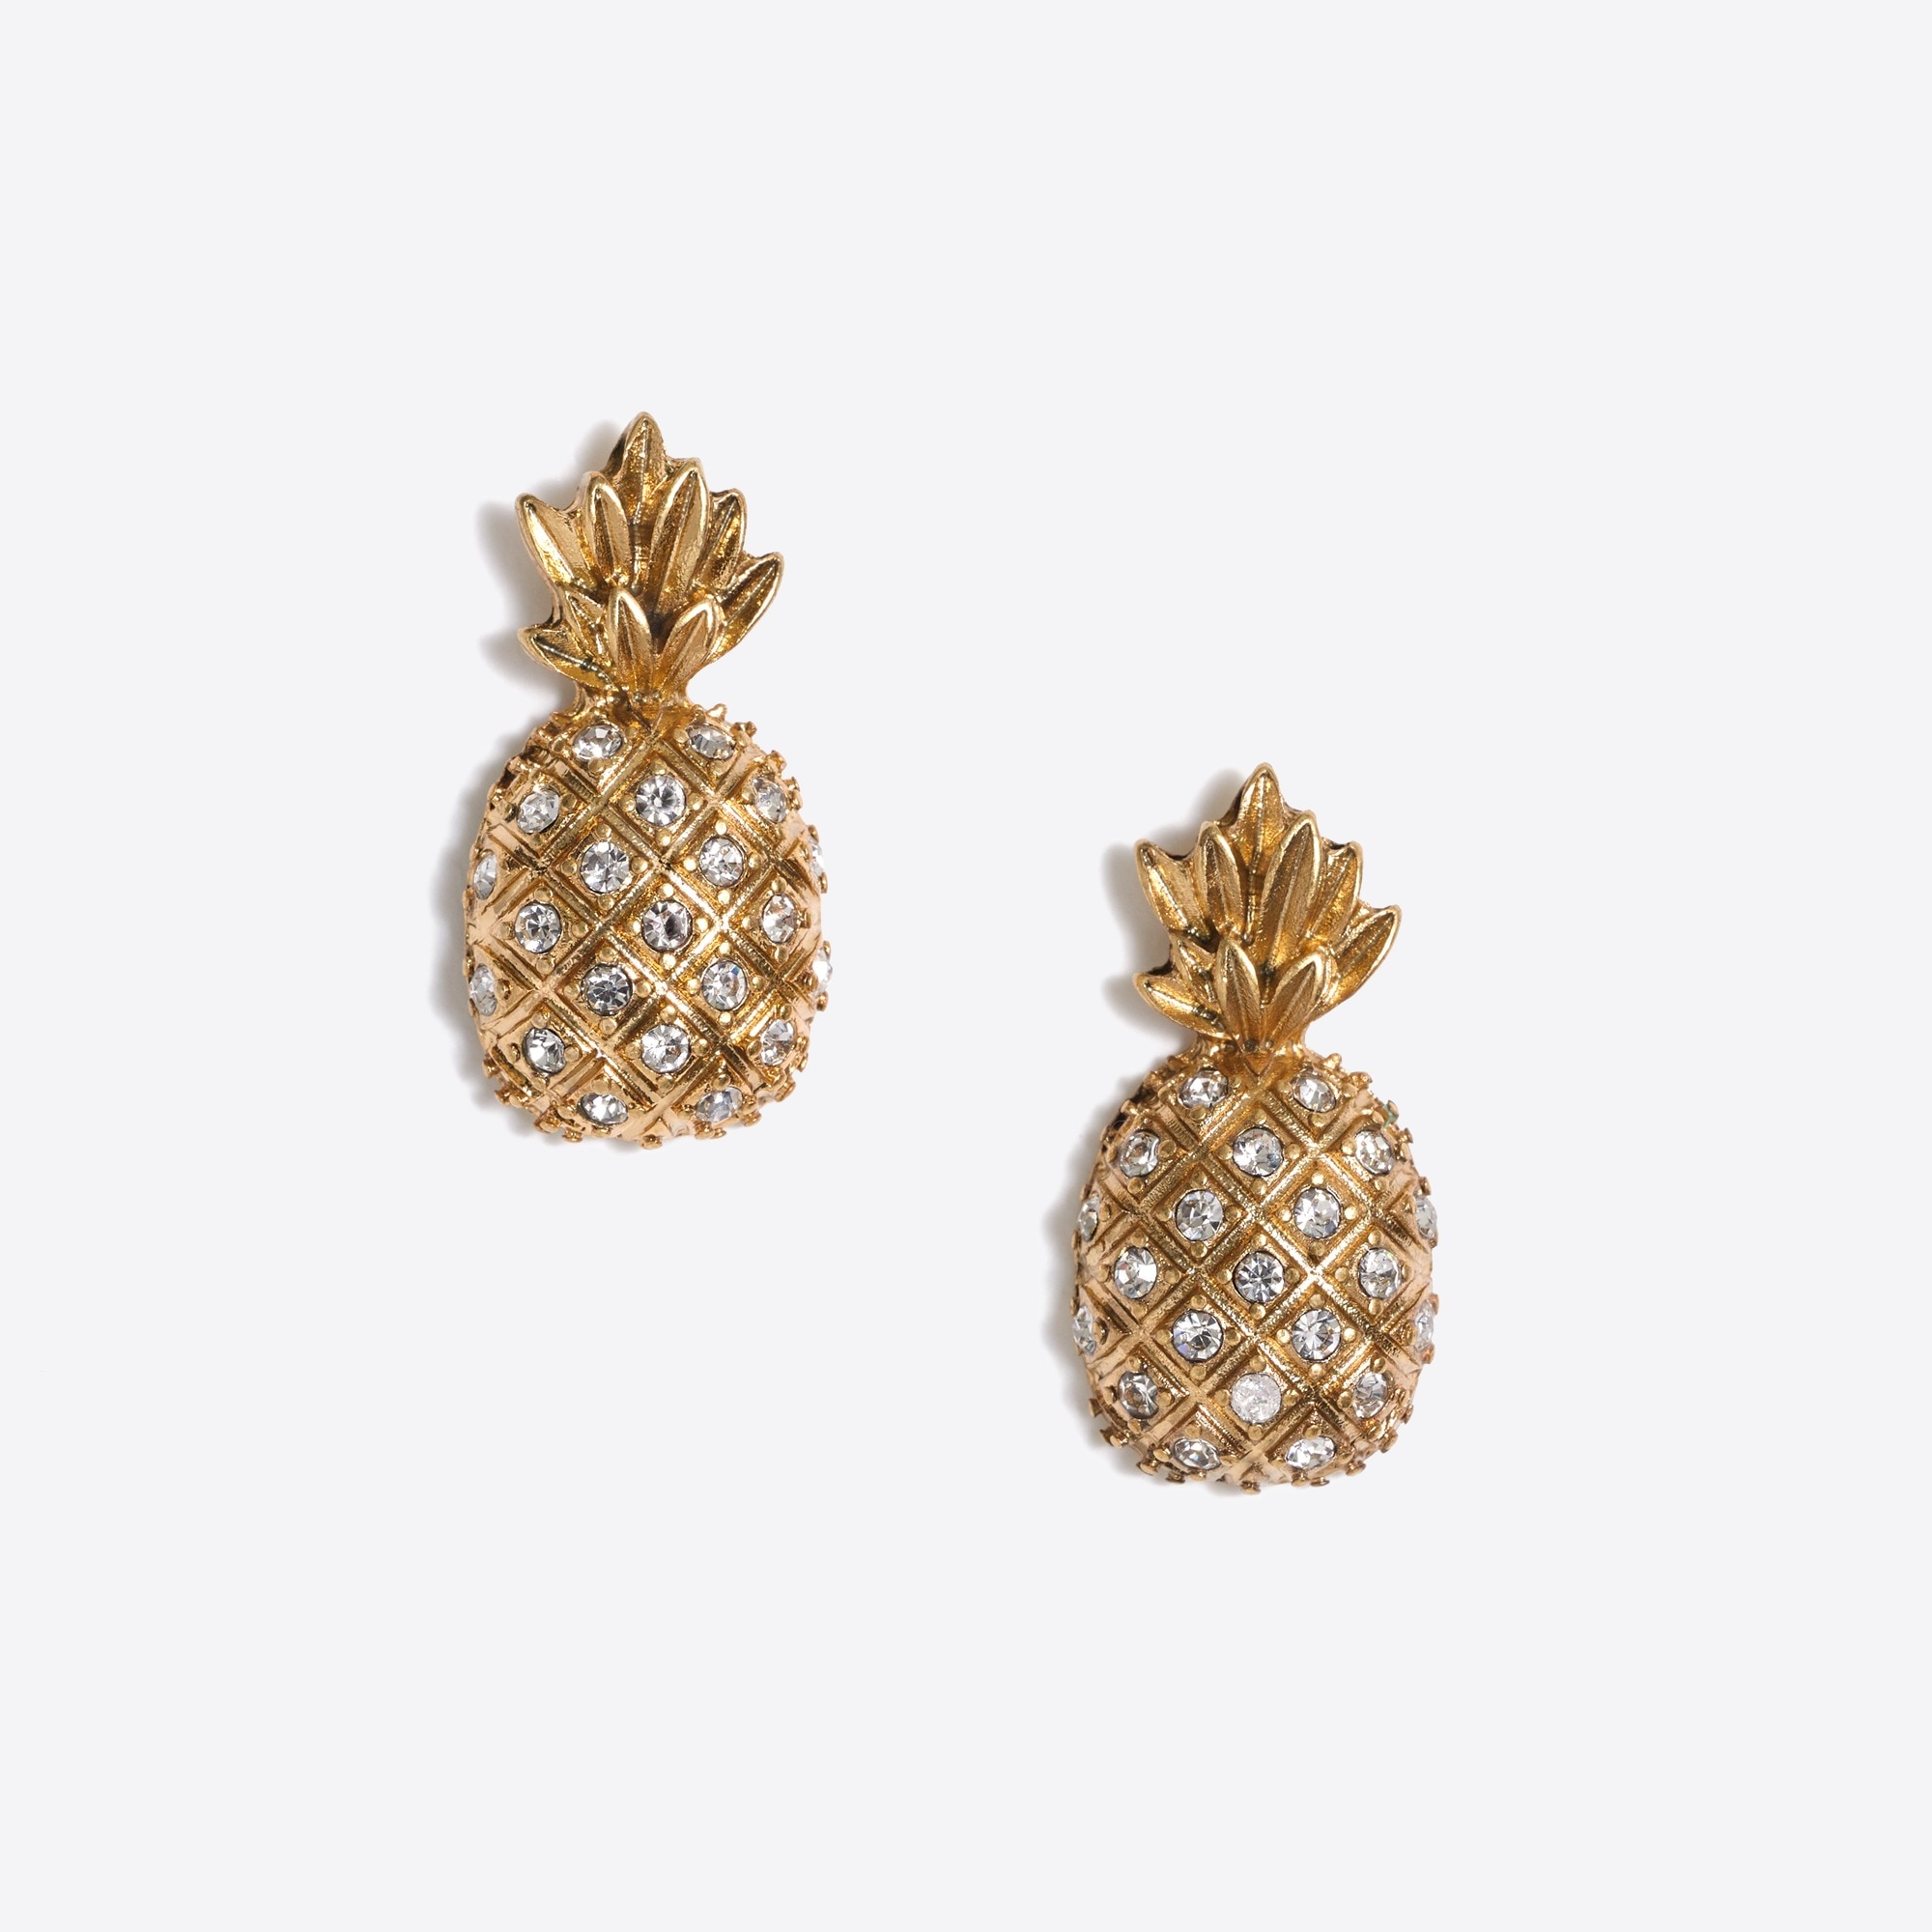 Image 1 for Pineapple earrings